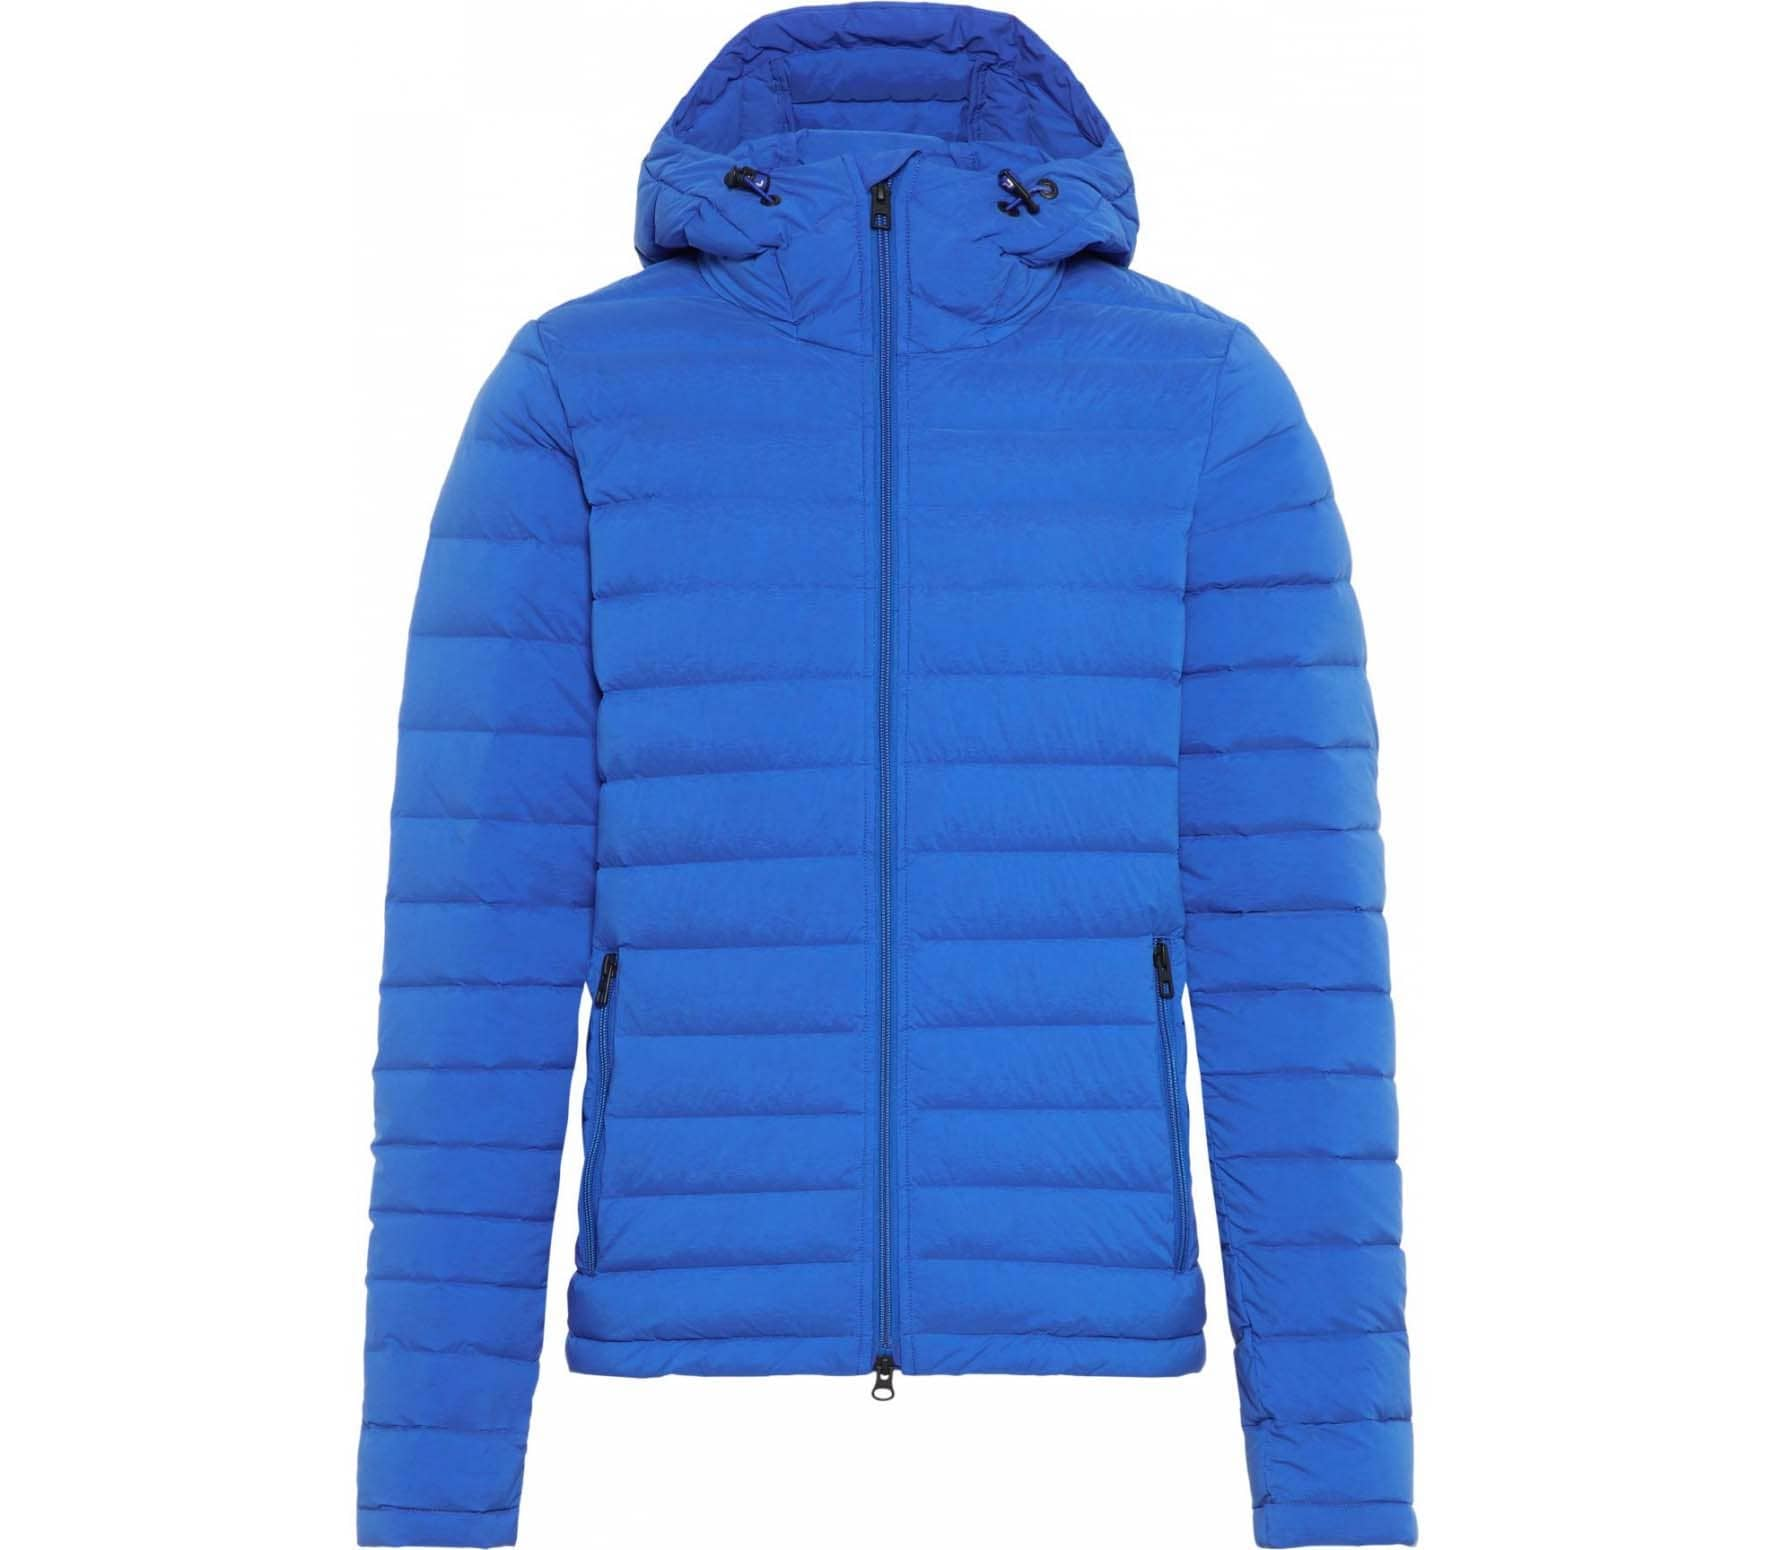 Ease Hooded Liner Men Down Jacket